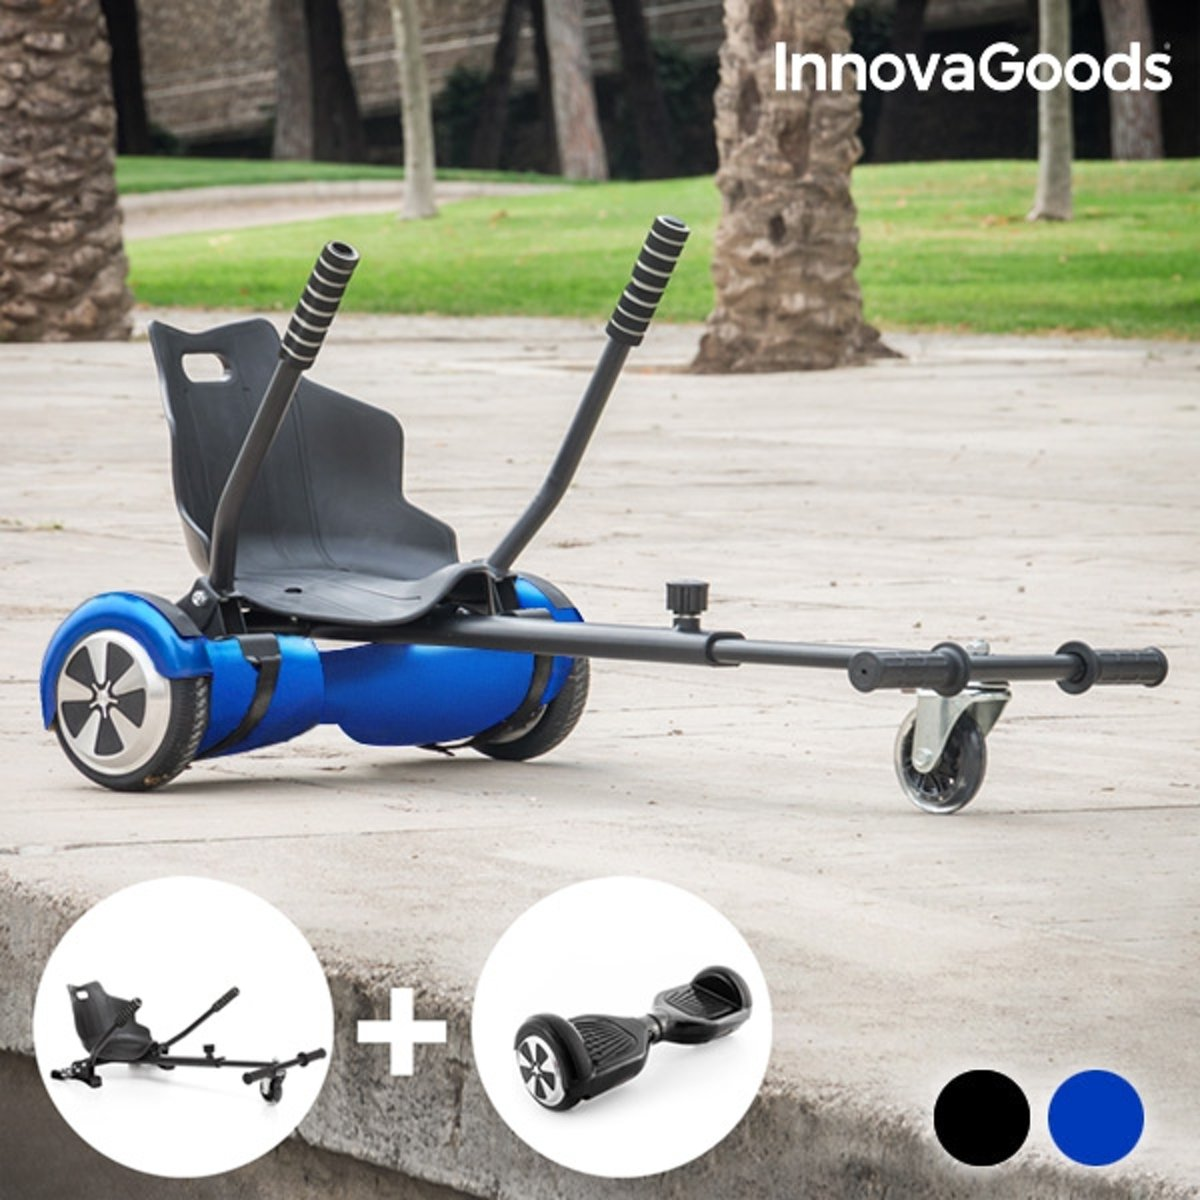 Hoverkart + Hoverboard Kit Inclusief Electrische Step Hoverboard (Blauw)